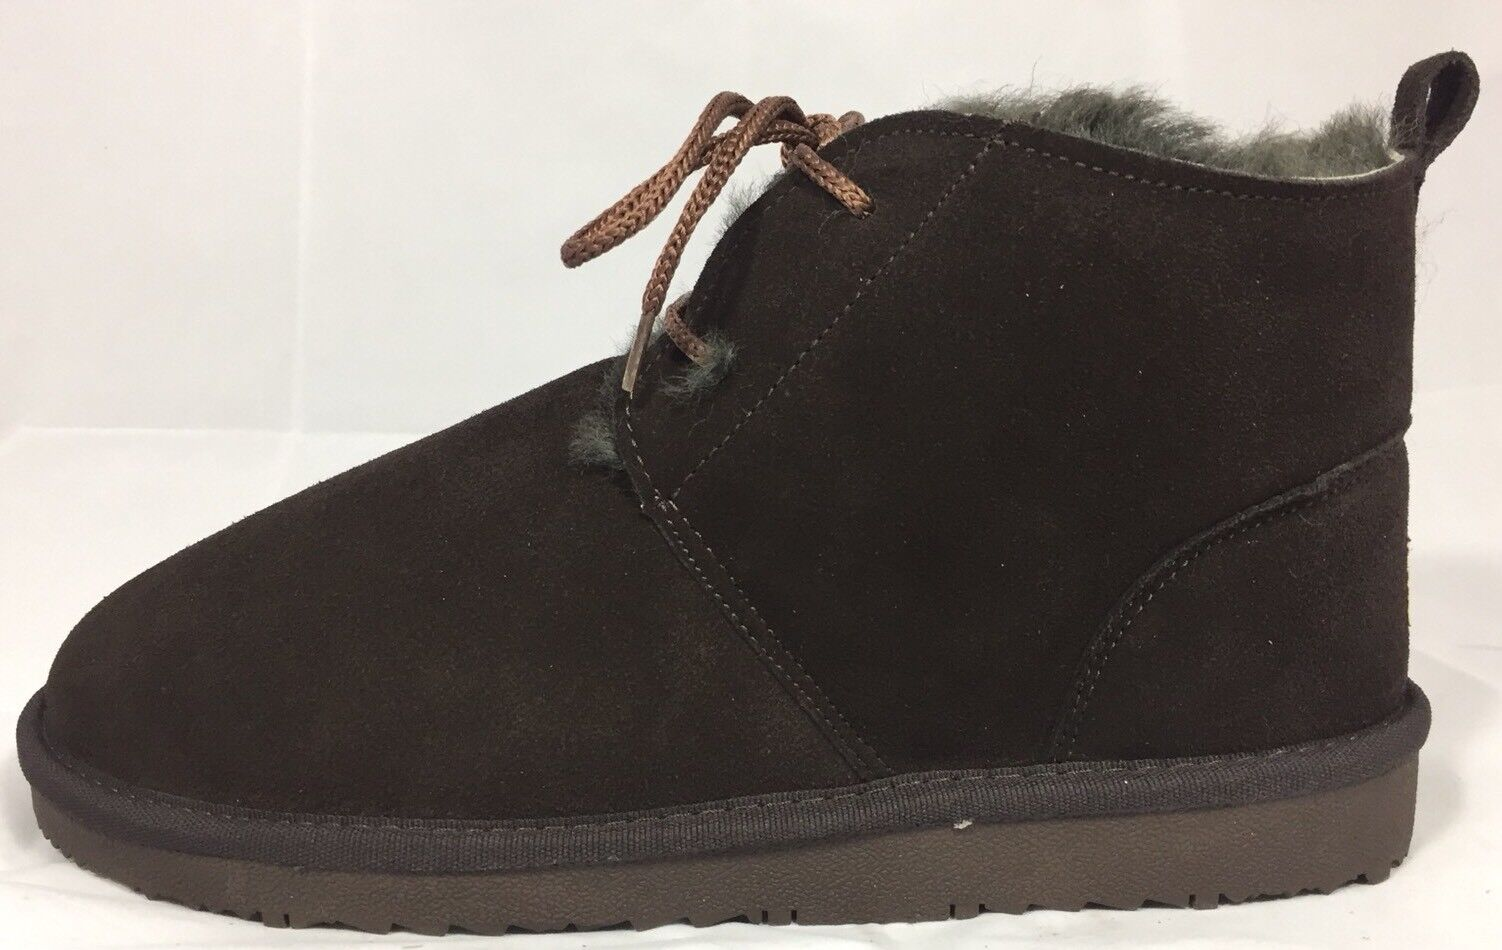 New AUABP Australia Mid Cut Boots Winter Women Choco Brown Leather Lining 11